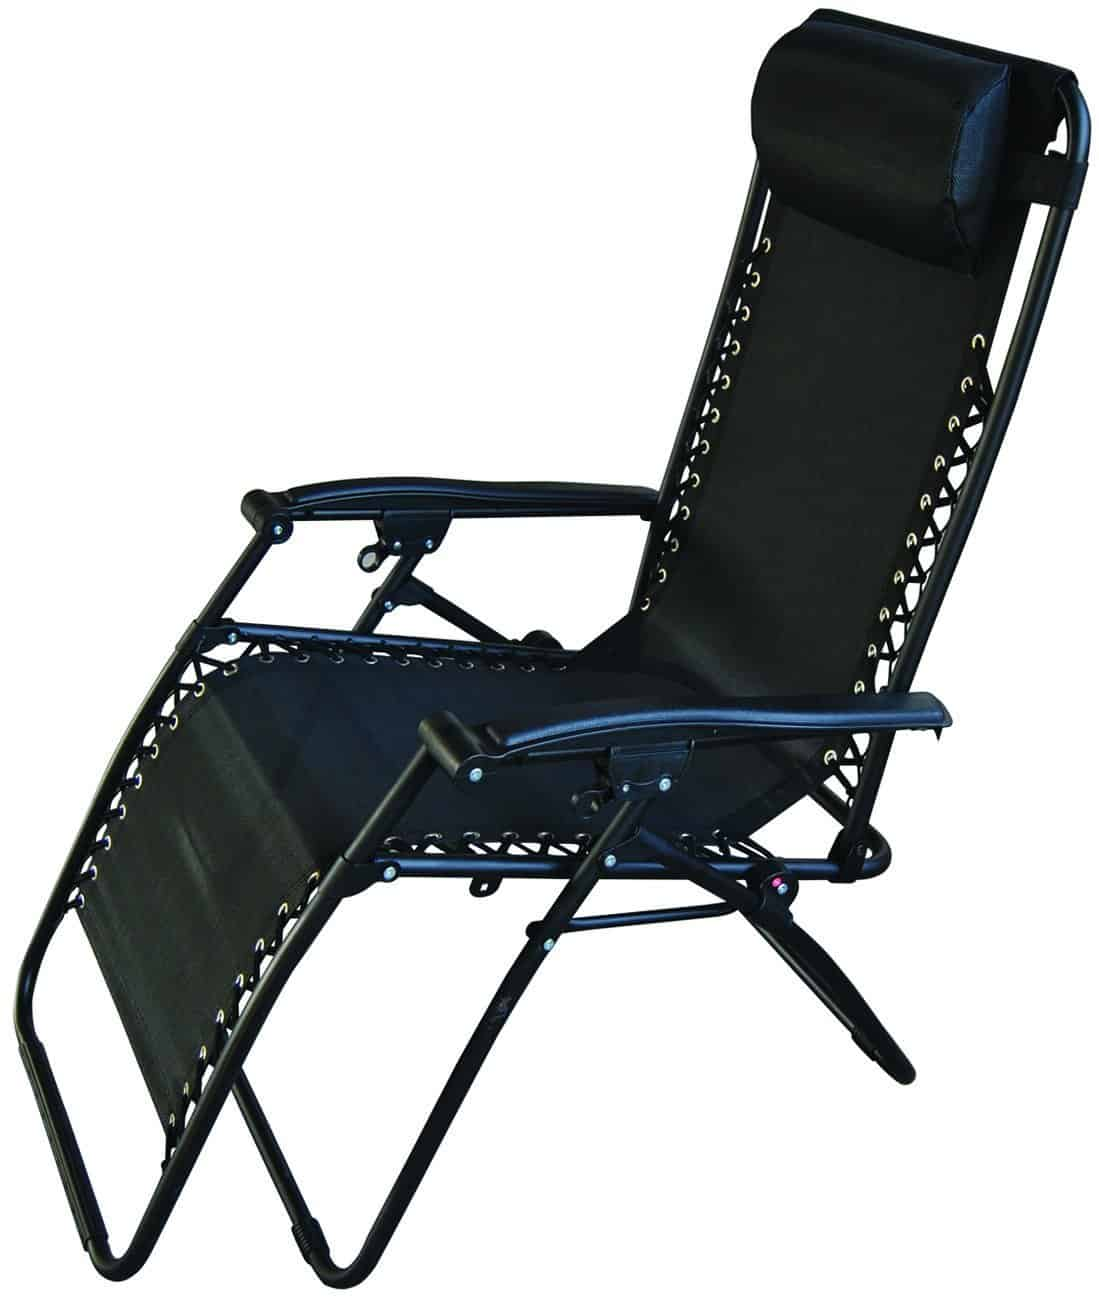 Best Camp Chair Camping Chair Reviews What Are The Best Camping Chairs